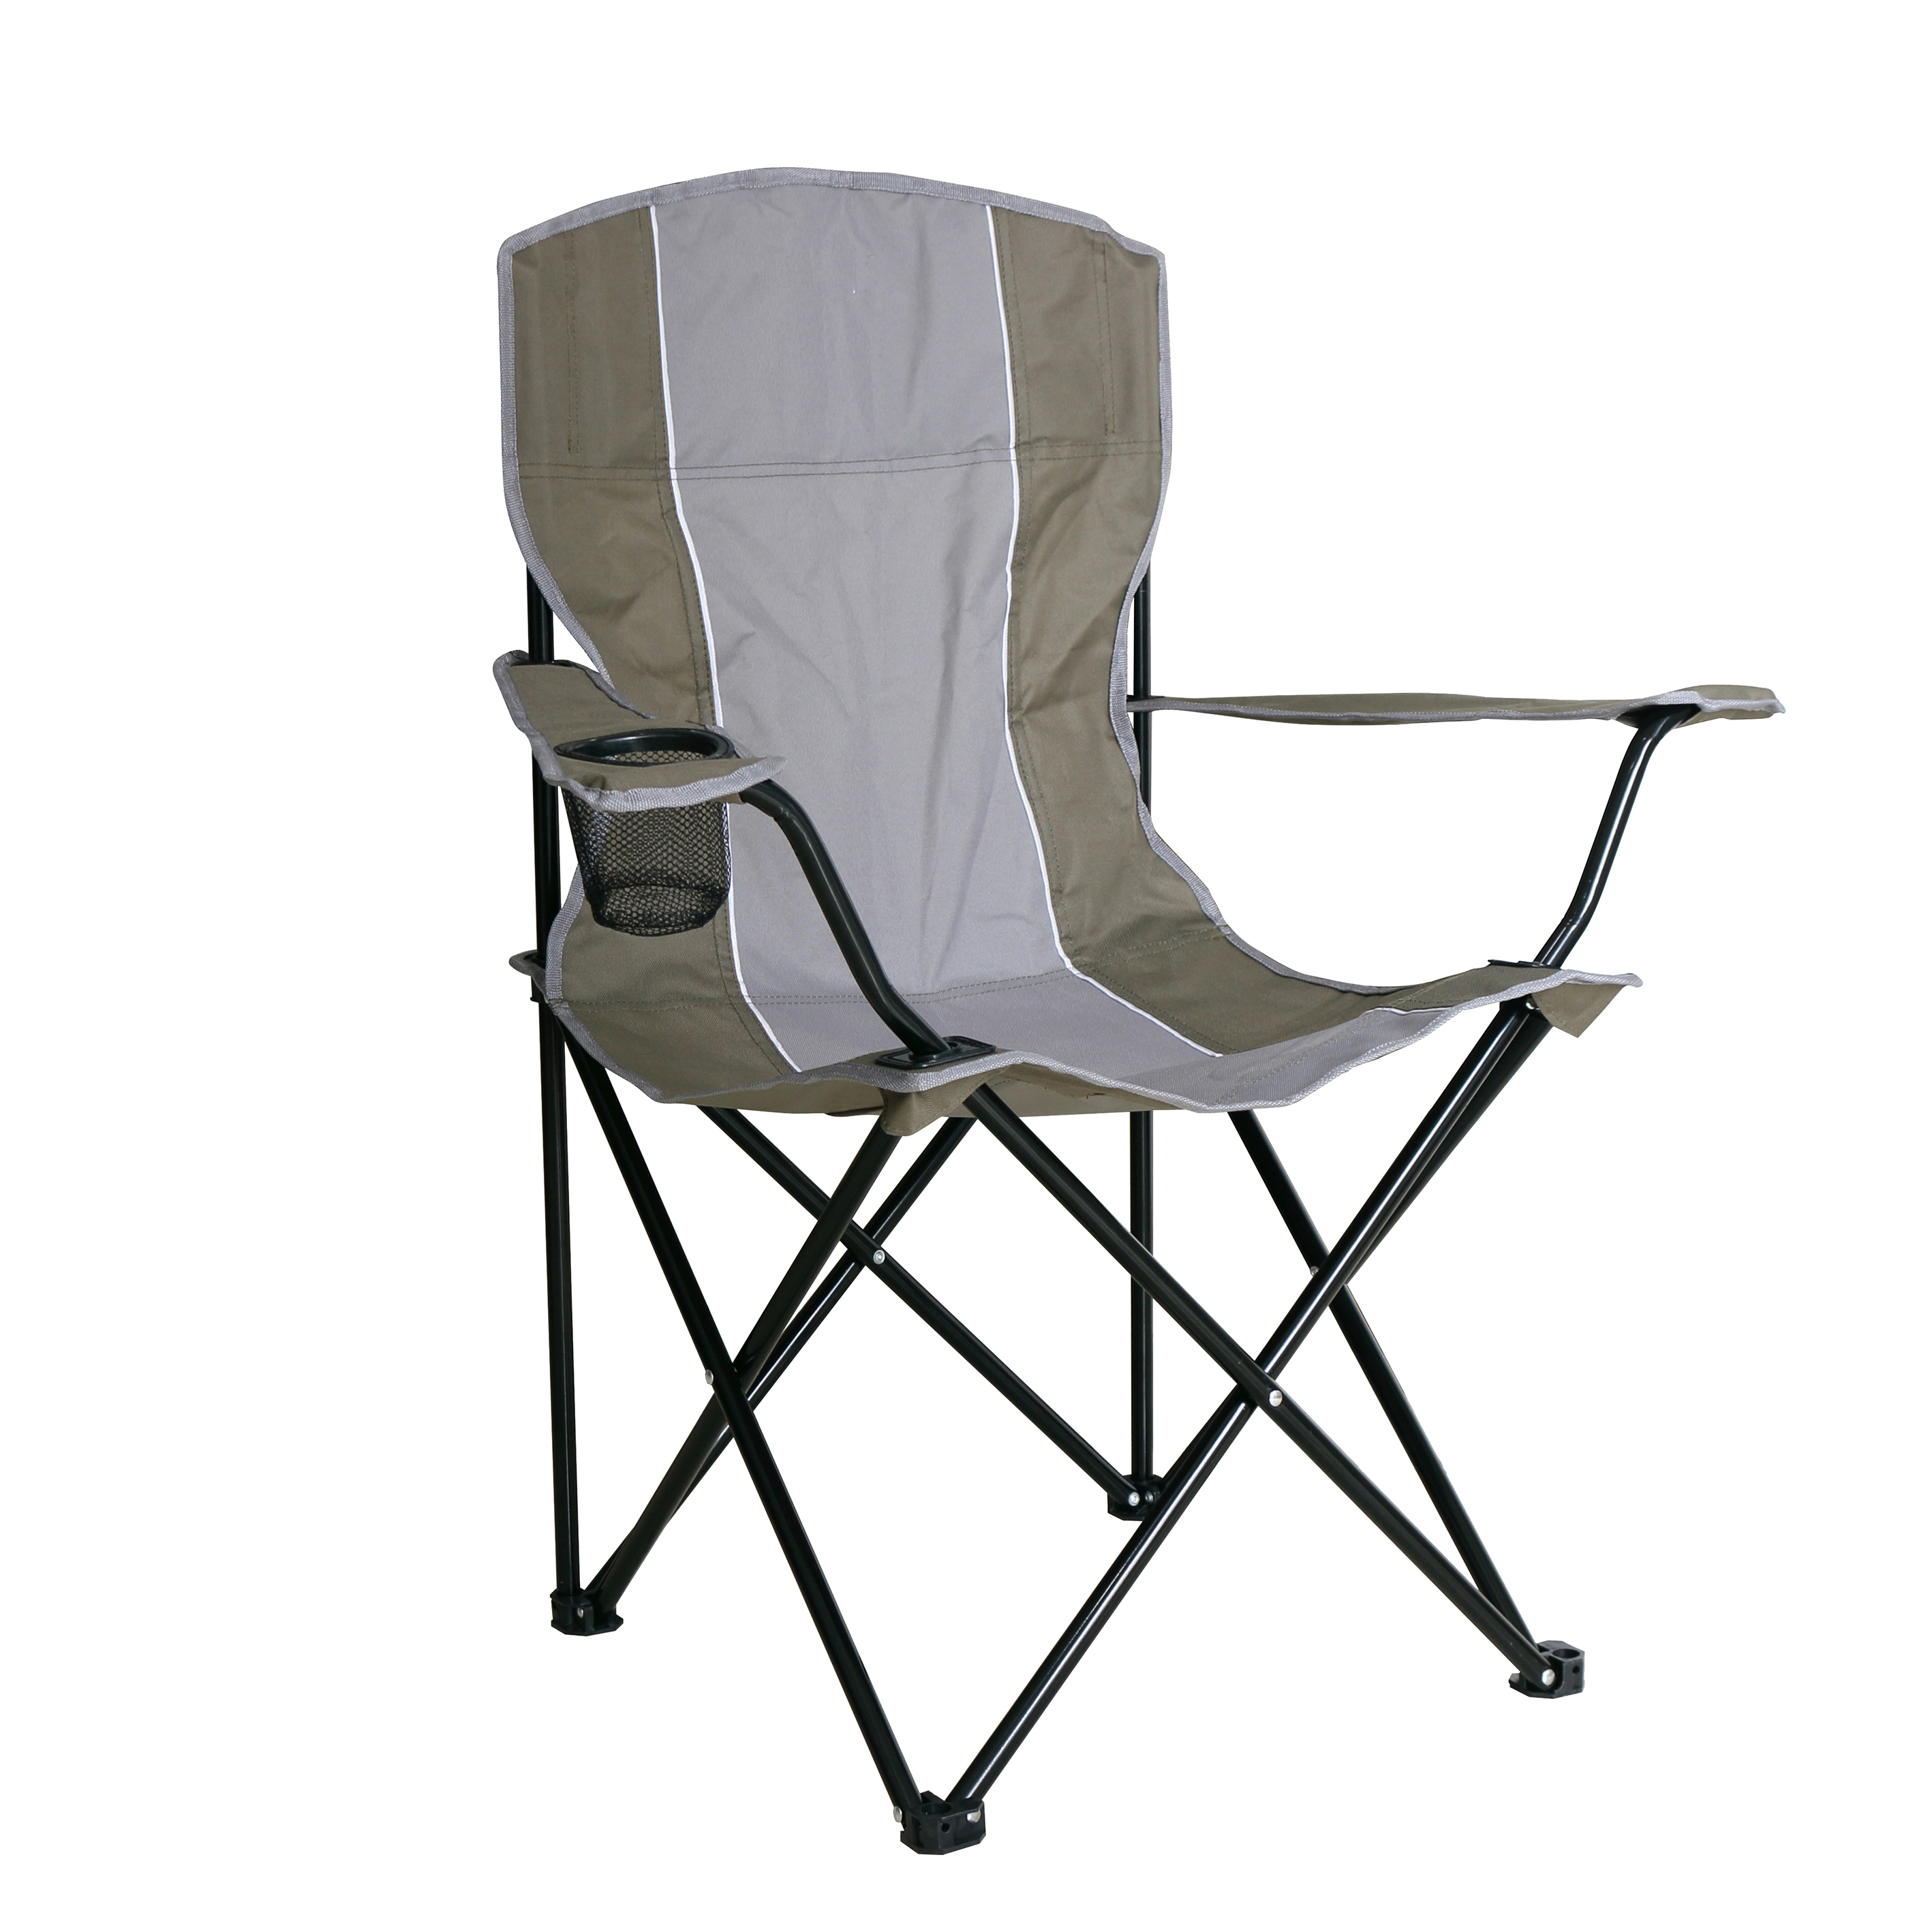 Folding Picnic Camping Chair With Cup Holder